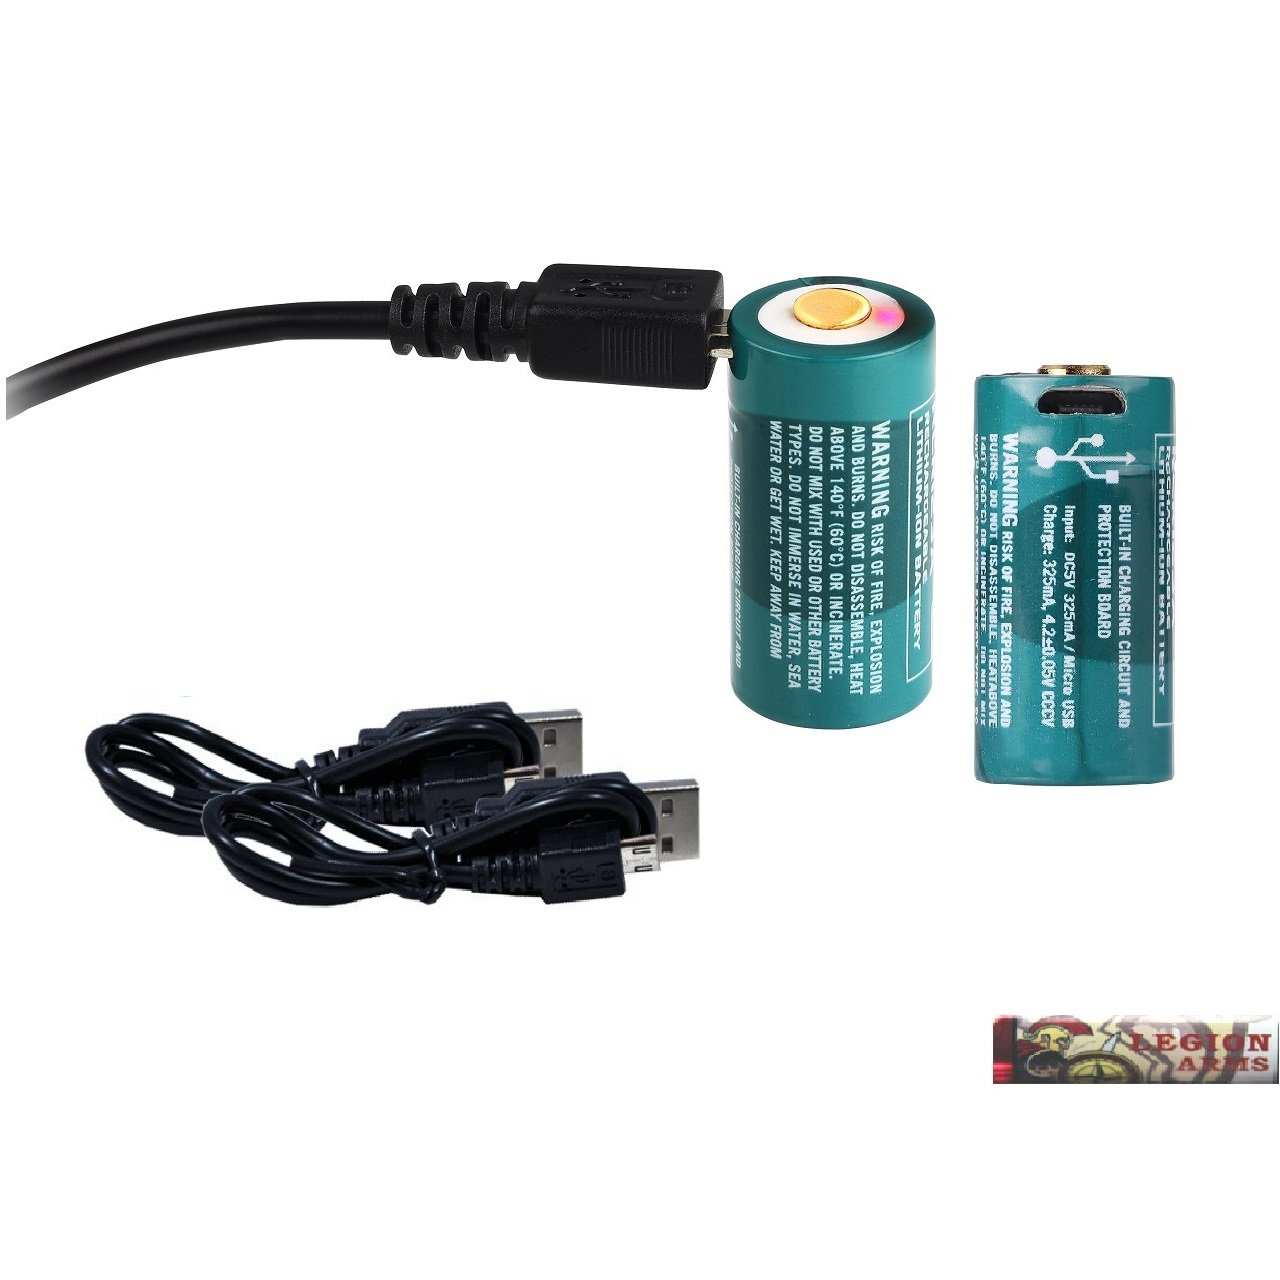 2 Pack Olight 650mah Rcr123a 16340 Rechargeable Li Ion Battery Tiny Charging Circuit To Build Usb Of Lithium Batteries W Built In Micro Port Cables For S1 Mini Baton H1 S